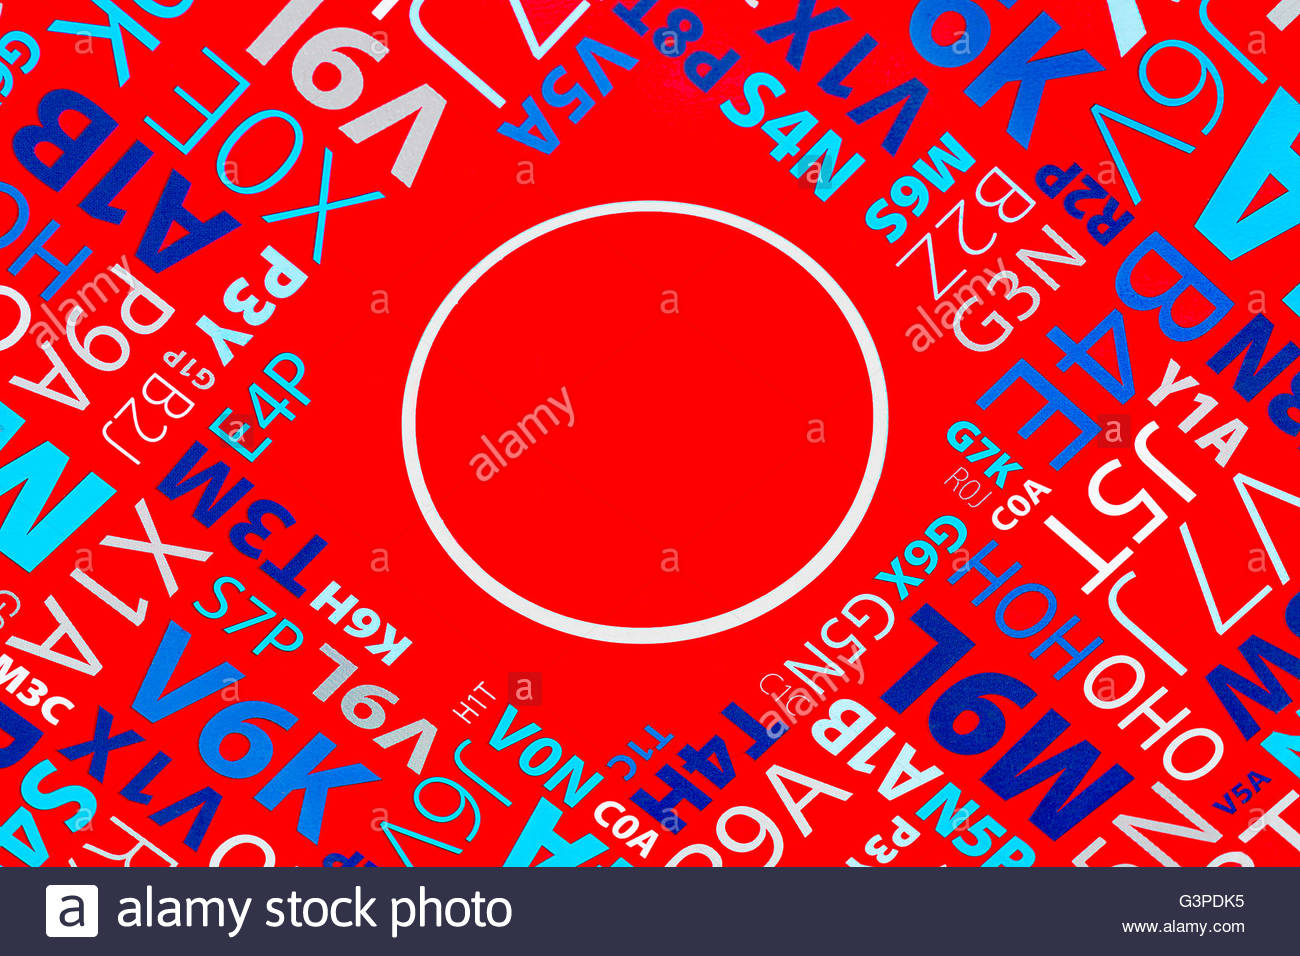 Composition of letters and digits on bright red background macro - Stock Image